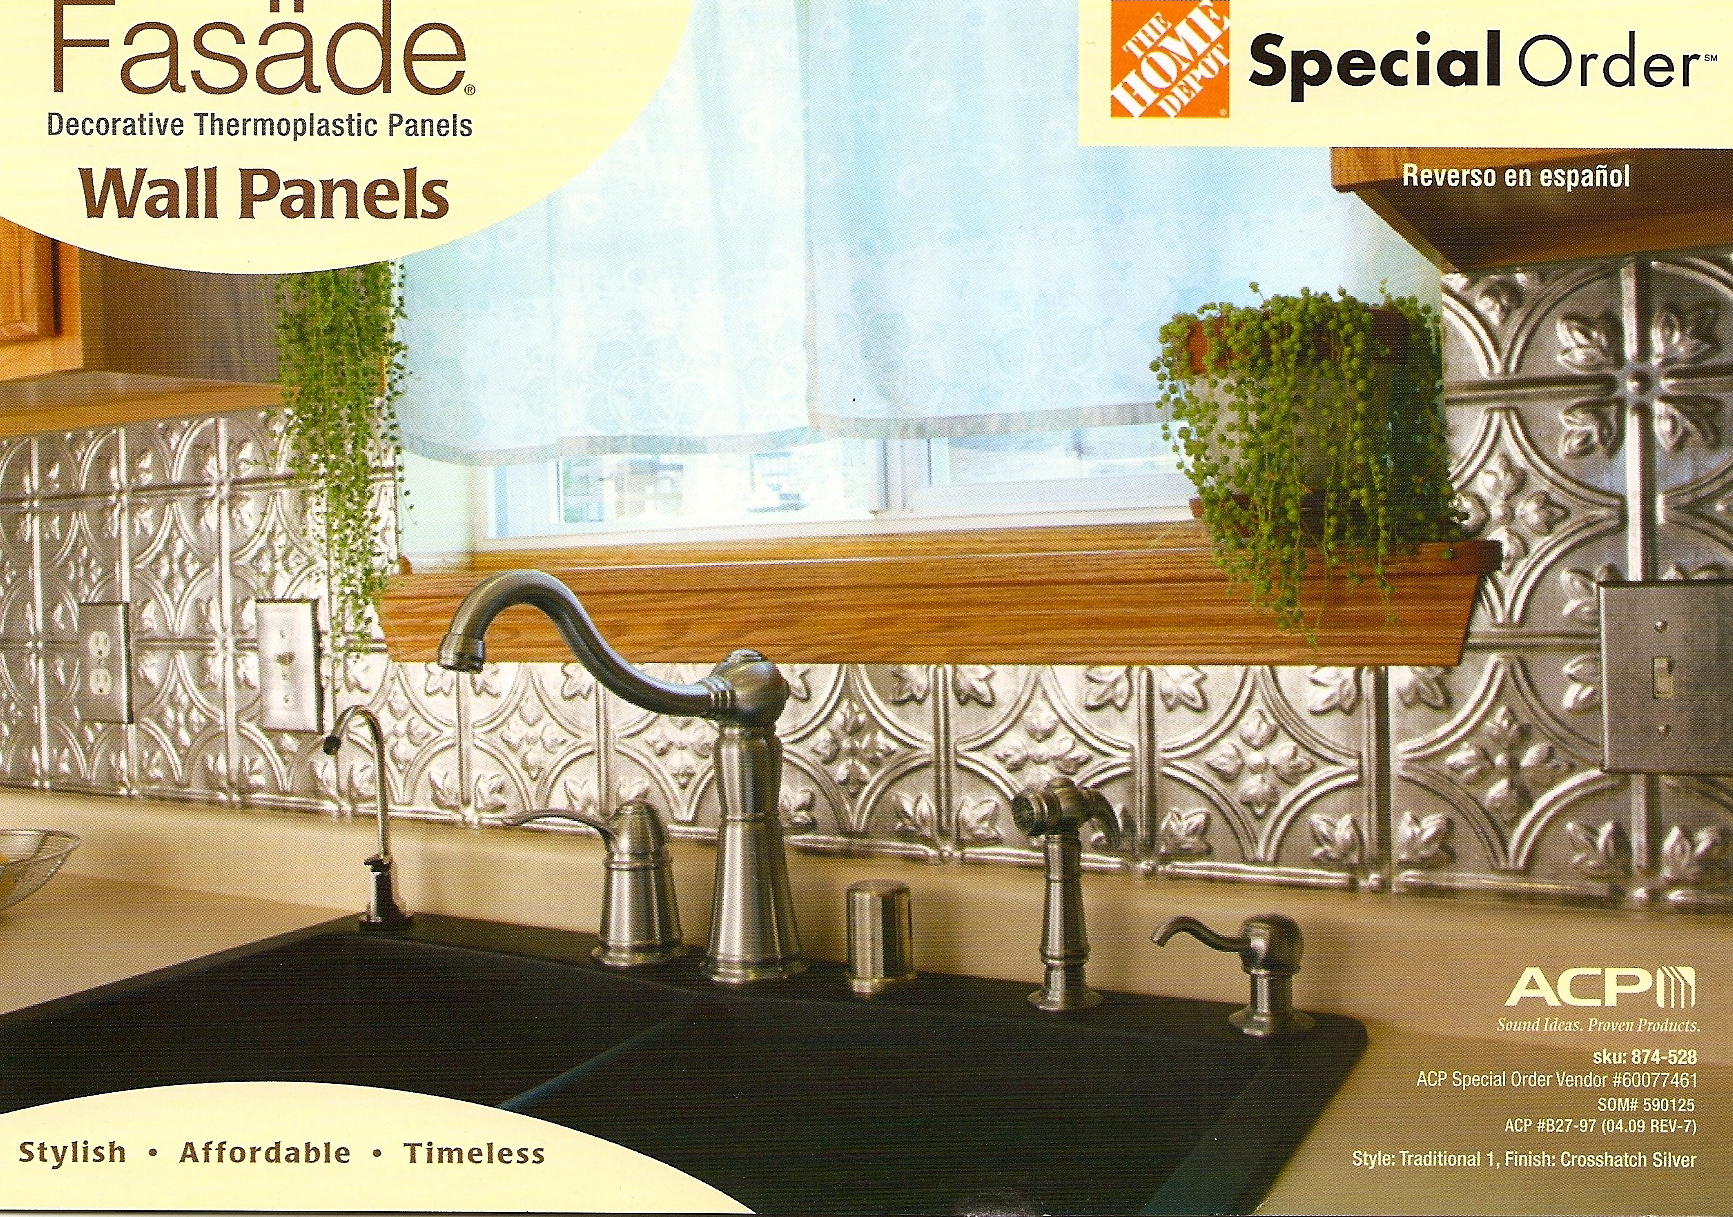 Fasade decorative wall panels or bedazzling moms kitchen becolorful facade wall panels dailygadgetfo Image collections